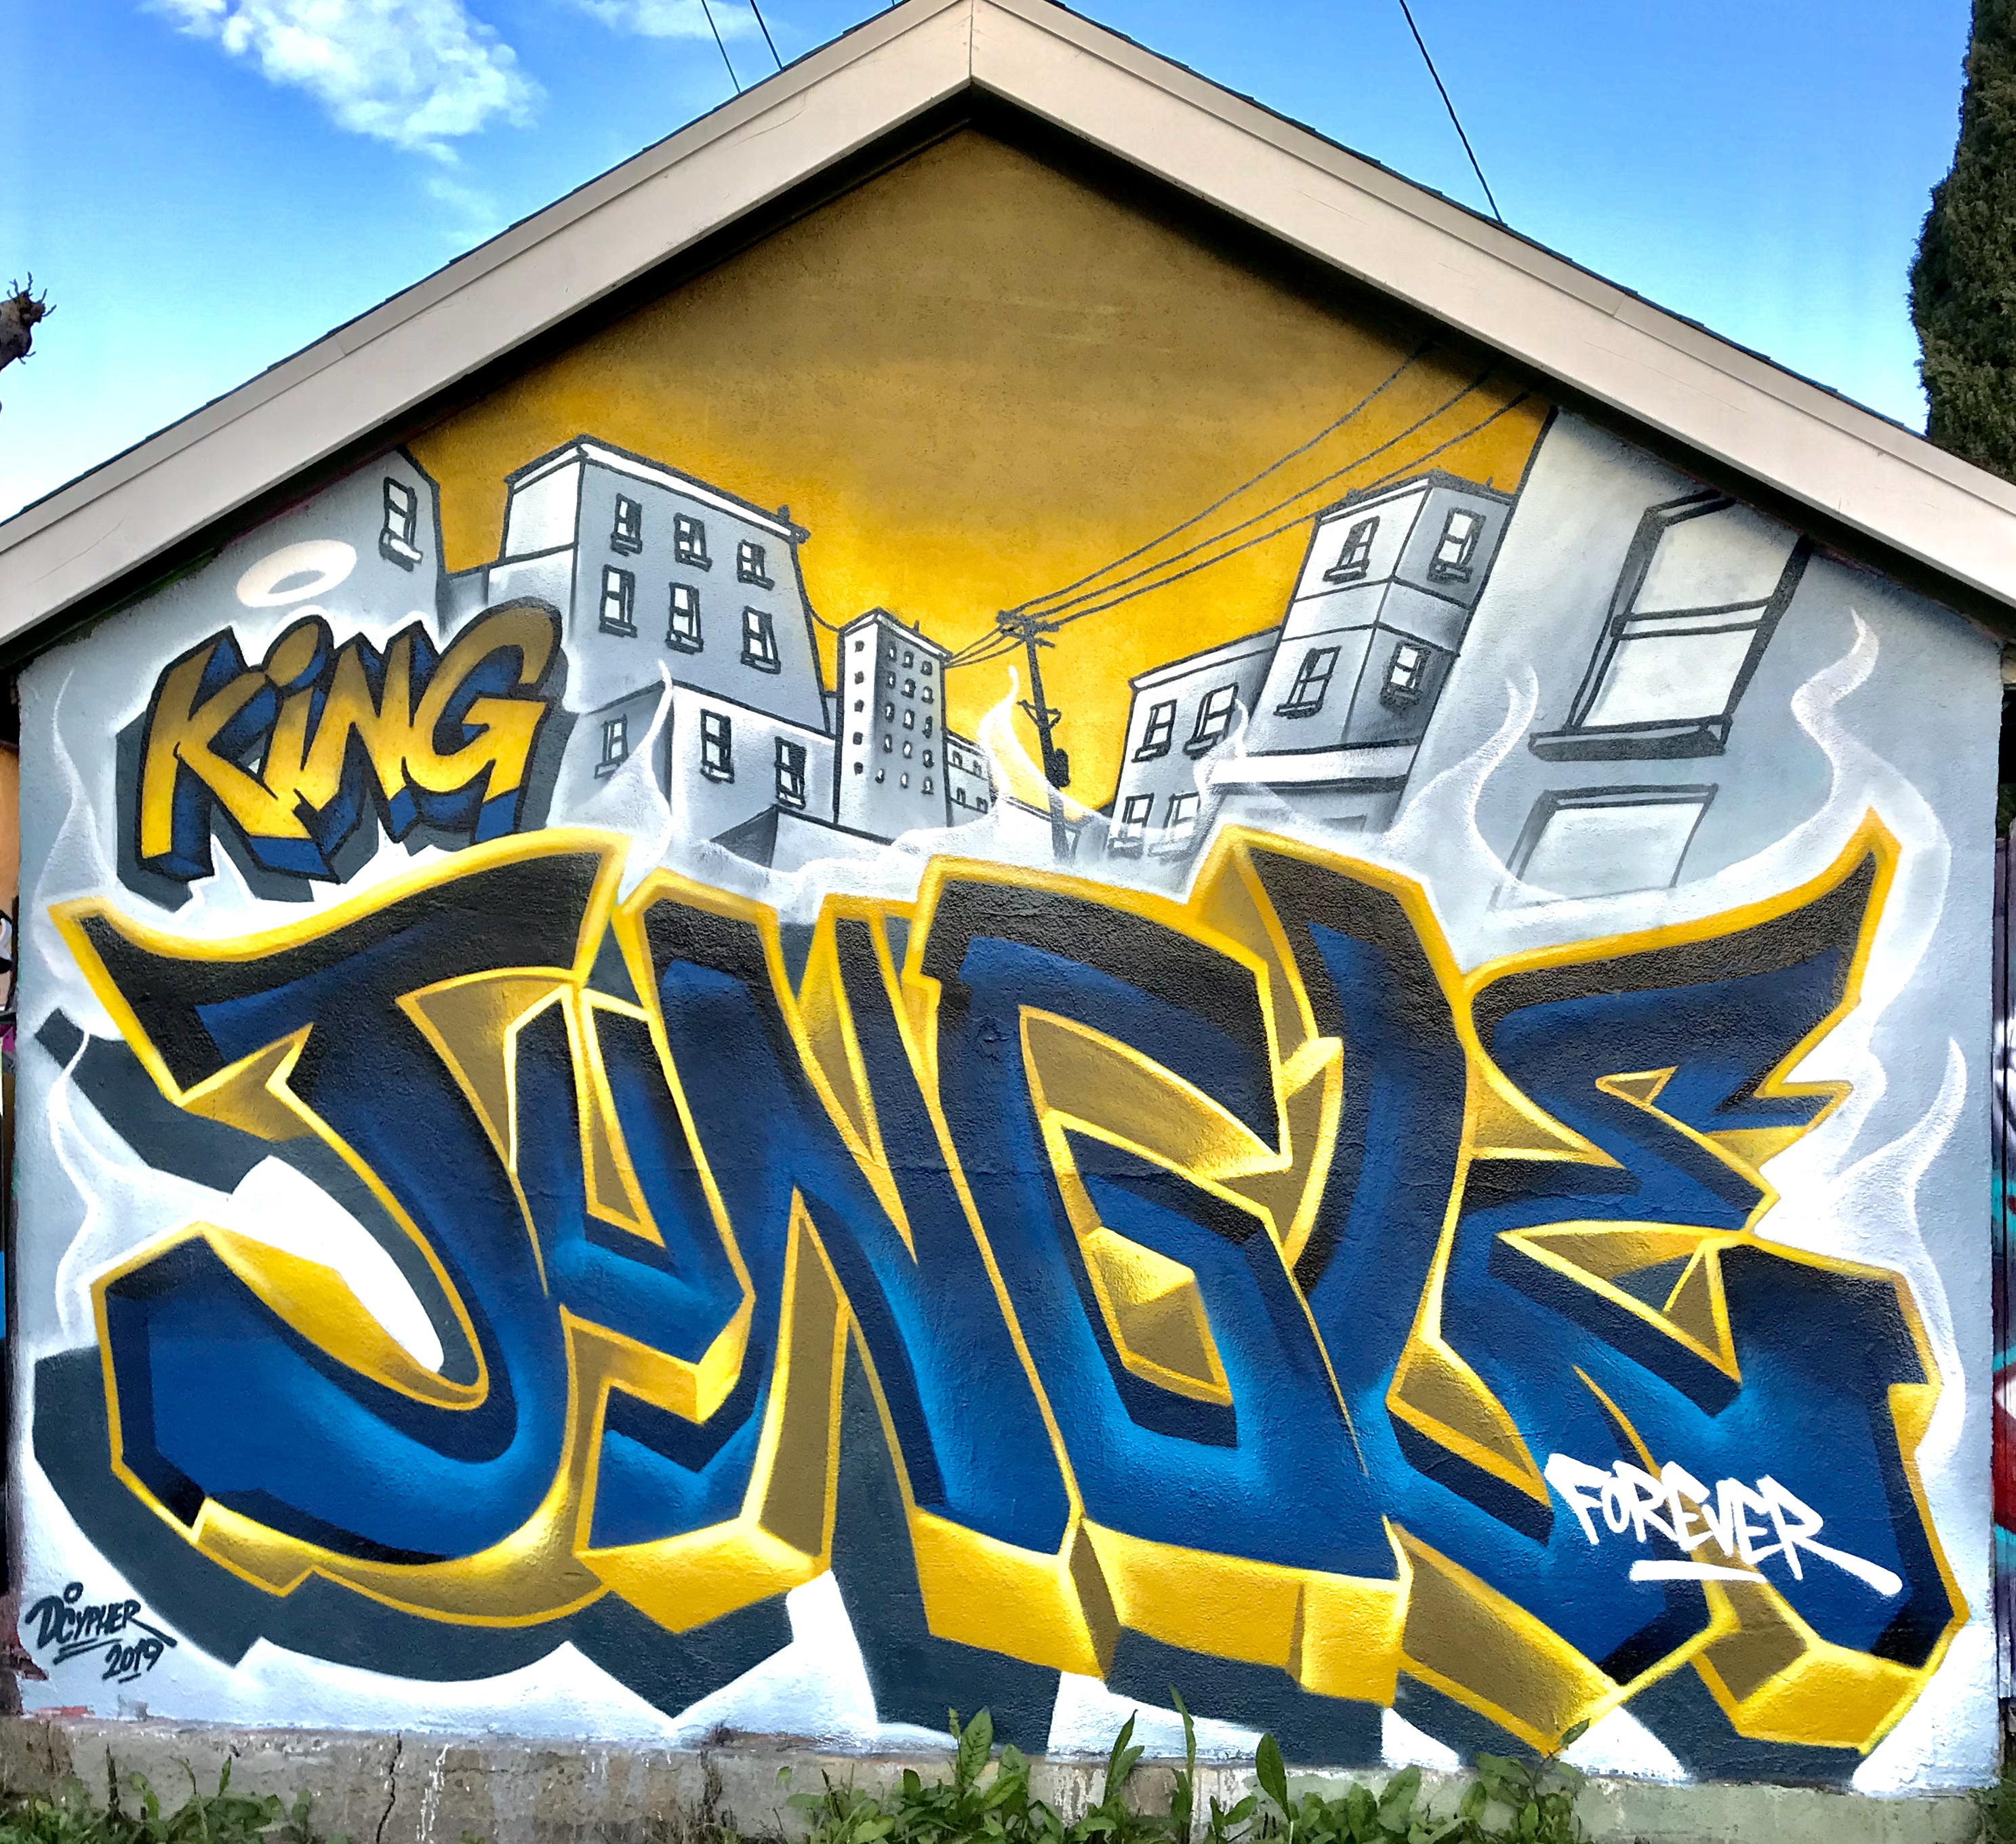 Dcypher's tribute to Jungle in Los Angeles, 2019. (Photo supplied by Dcypher)